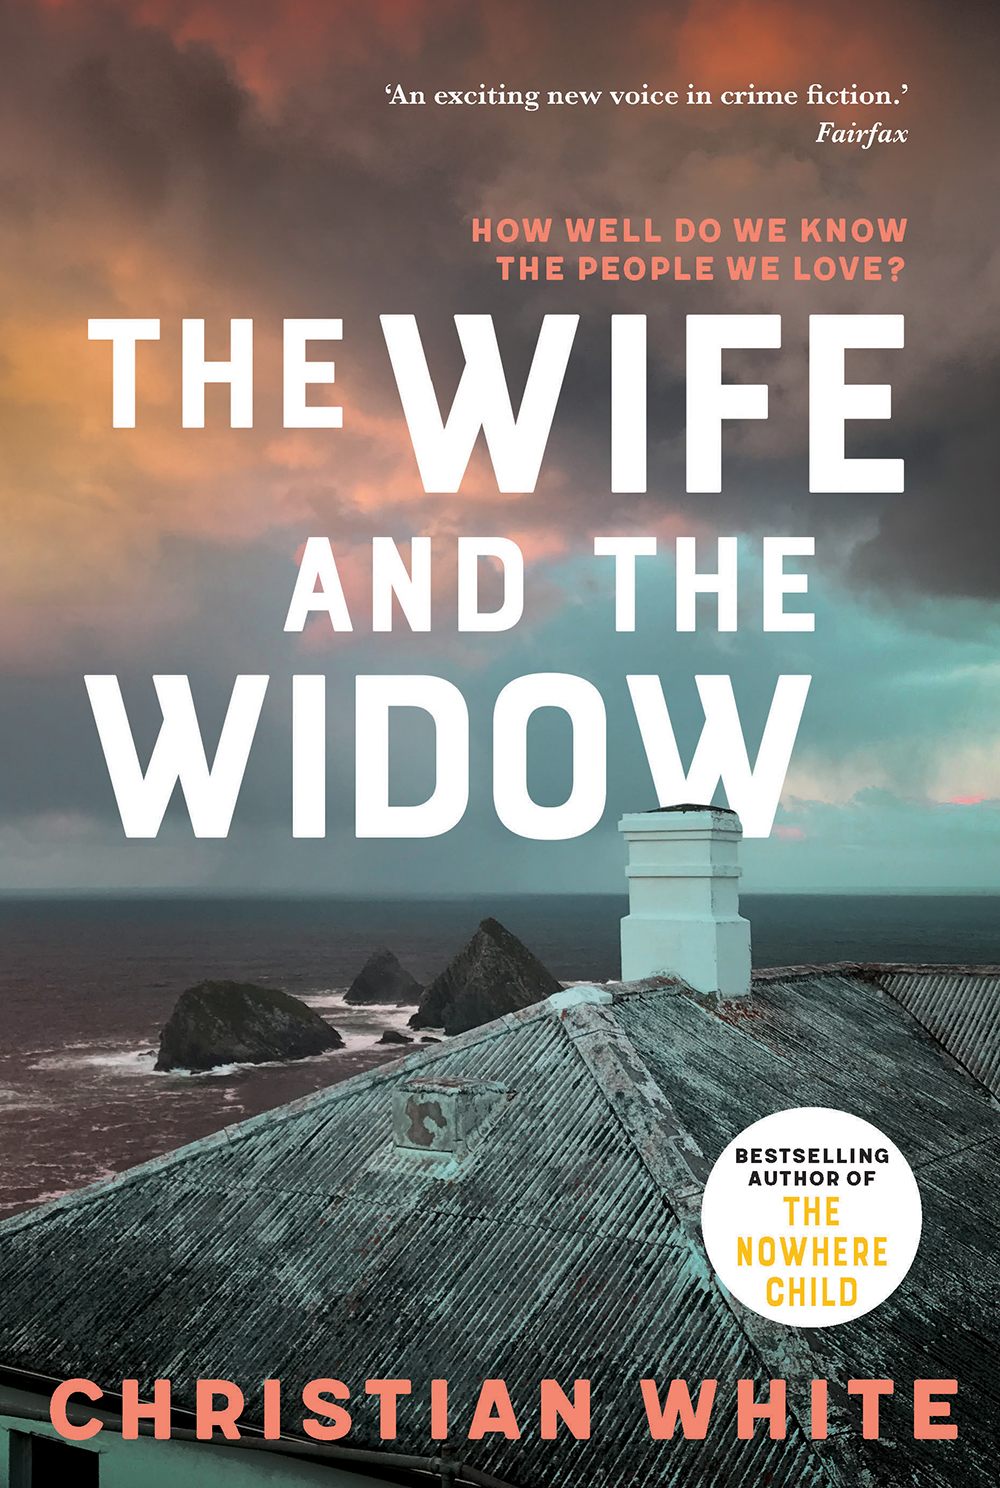 Source: https://www.google.com/search?q=the+wife+and+the+widow+book+cover&rlz=1C1CHBF_en-GB&sxsrf=ACYBGNQZG-vD6l6NBHT0NvziNVg6pO0PkA:1579939548785&source=lnms&tbm=isch&sa=X&ved=2ahUKEwipism8pZ7nAhXPV30KHVj6ChEQ_AUoAXoECA0QAw&biw=1242&bih=524#imgrc=3rBlZ5AolU-_sM: